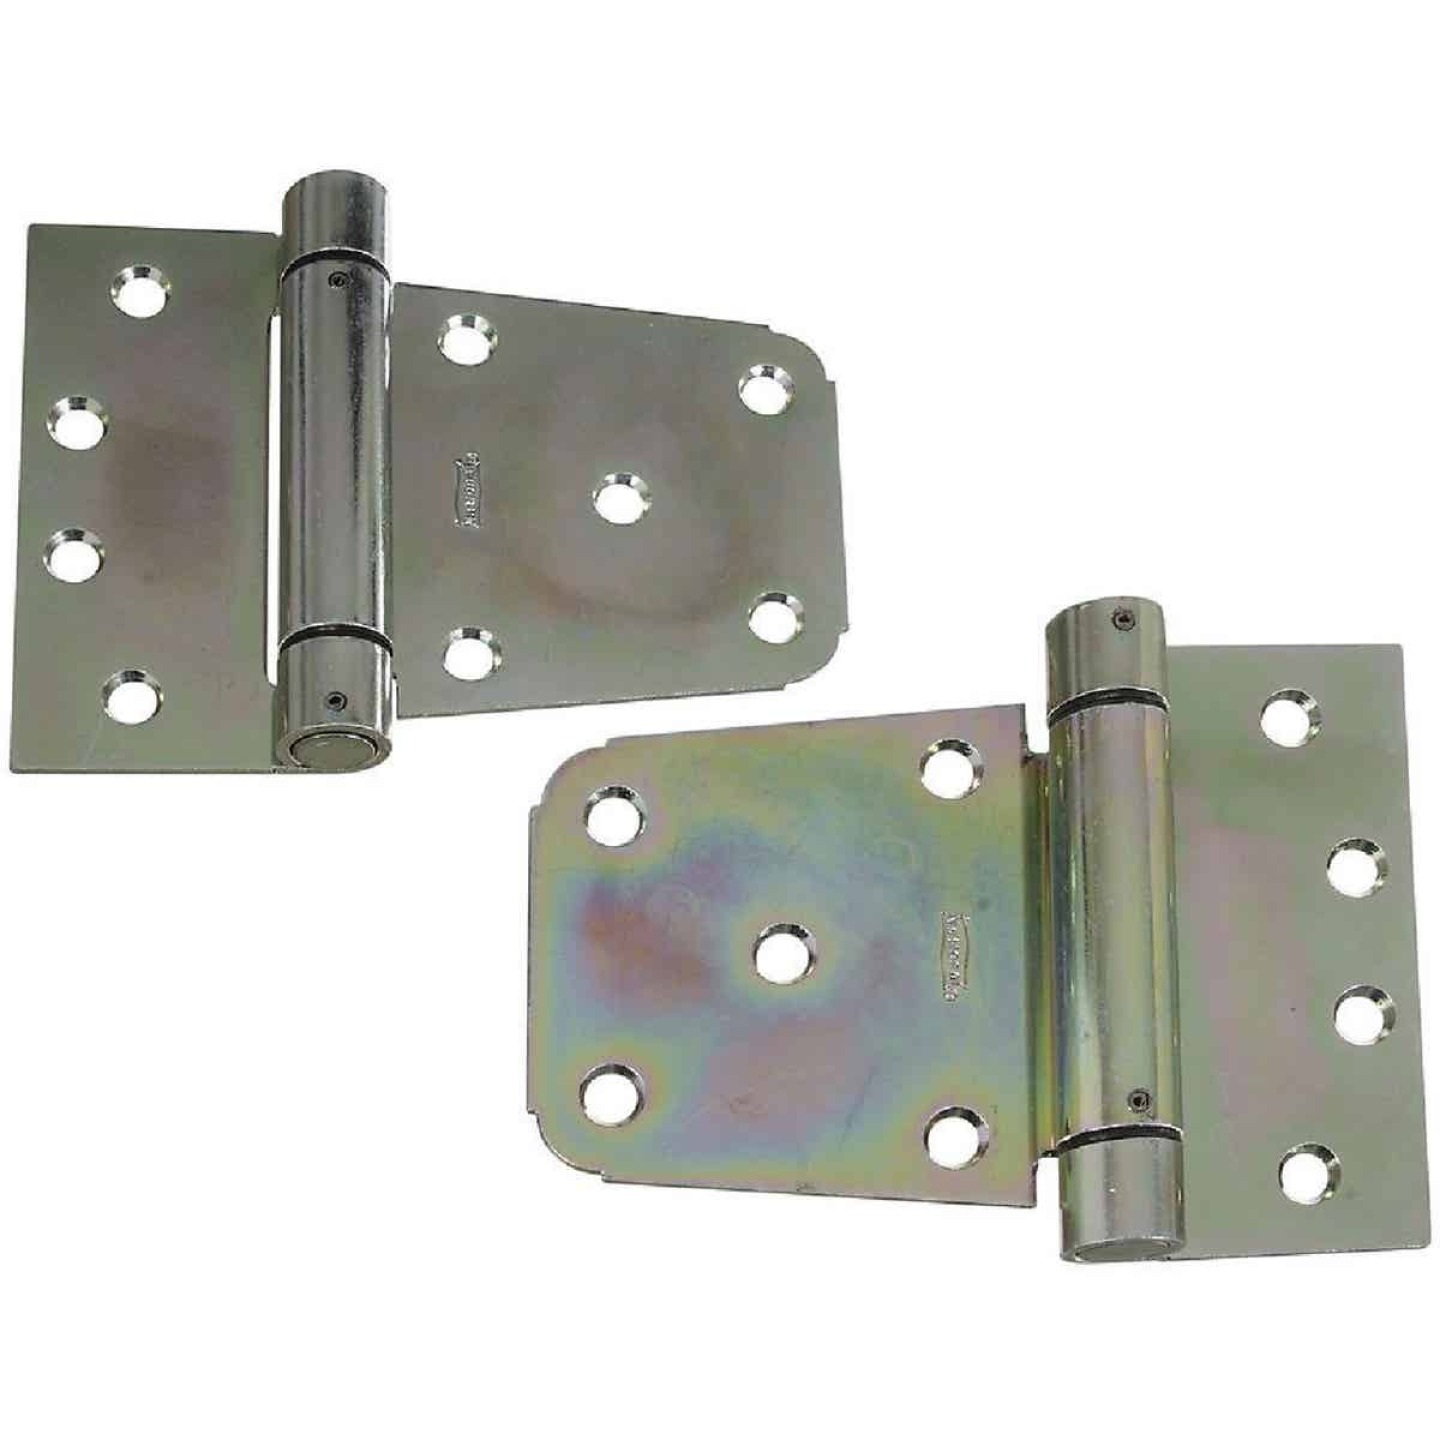 National 3-1/2 In. Zinc Heavy-Duty Gate Hinge Set (2 Count) Image 1